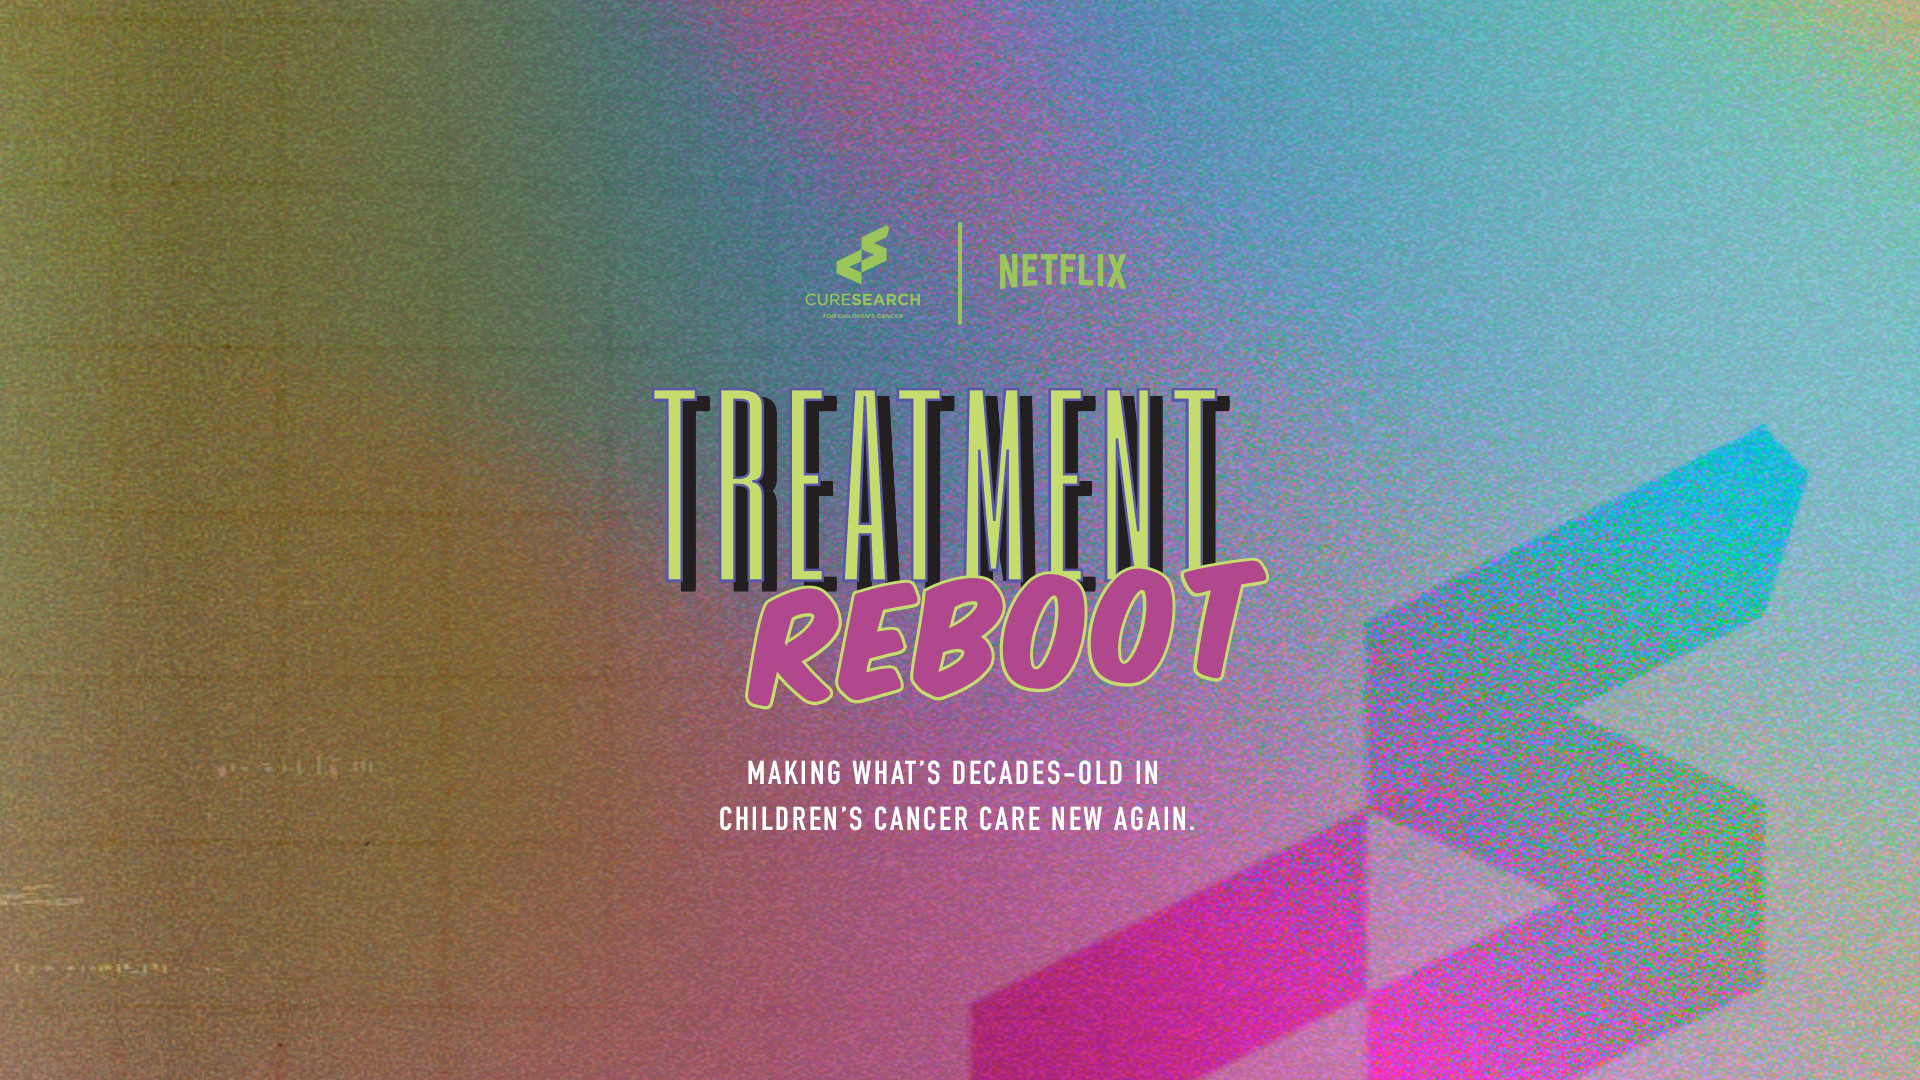 Treatment reboot for websiteArtboard 3.j